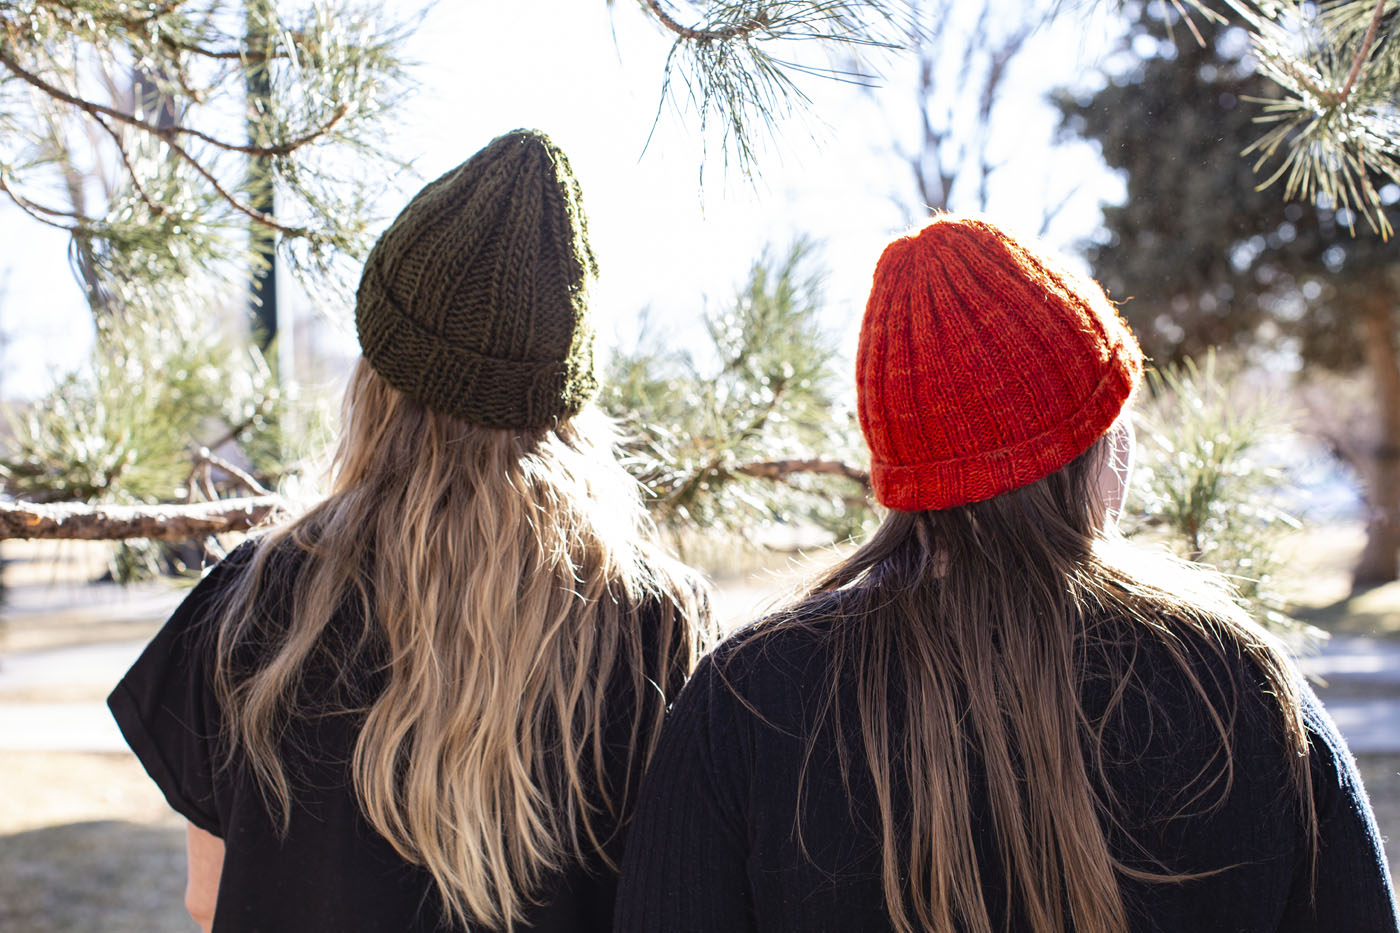 Two people in rib-knit beanies stand with their backs to the camera. Their long hair cascades out from under the backs of the hats as they look through the boughs of an evergreen tree and out toward a hiking adventure.